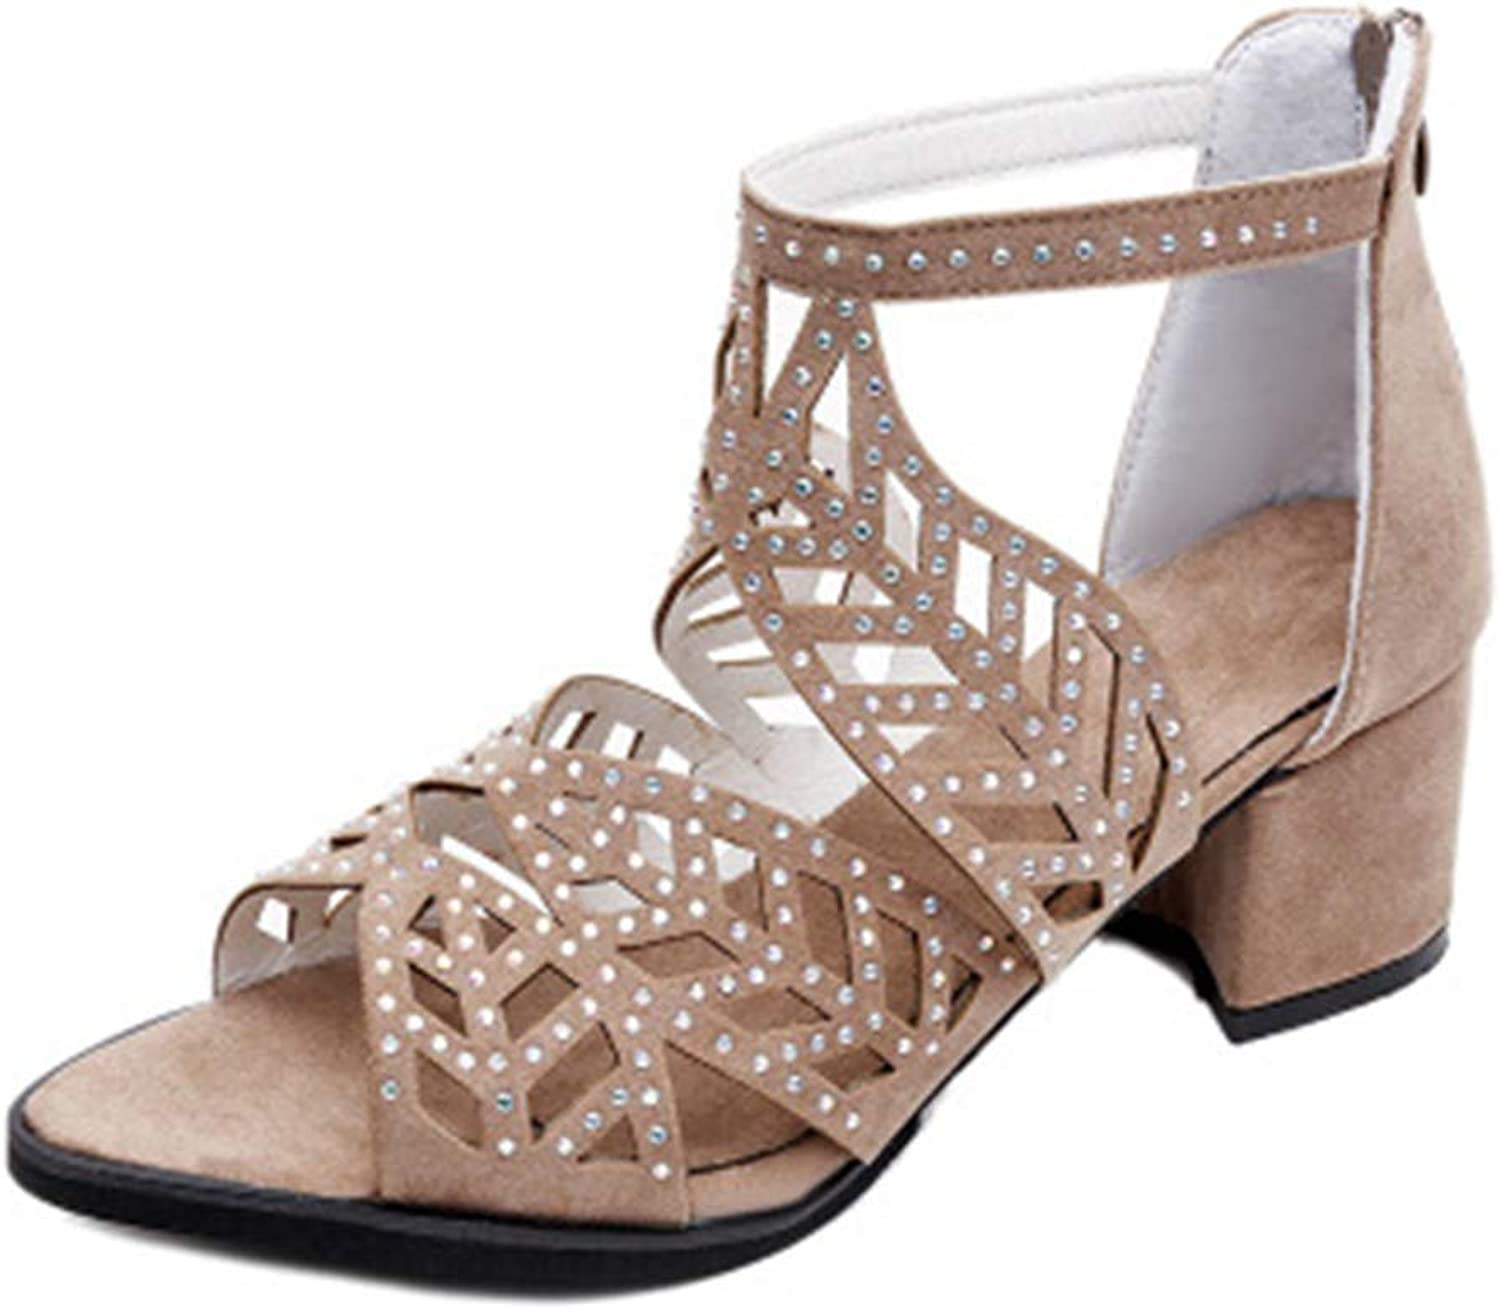 Eleganceoo Women's Fashion Chunky Heel with Buckle Ankle Strap Sandals